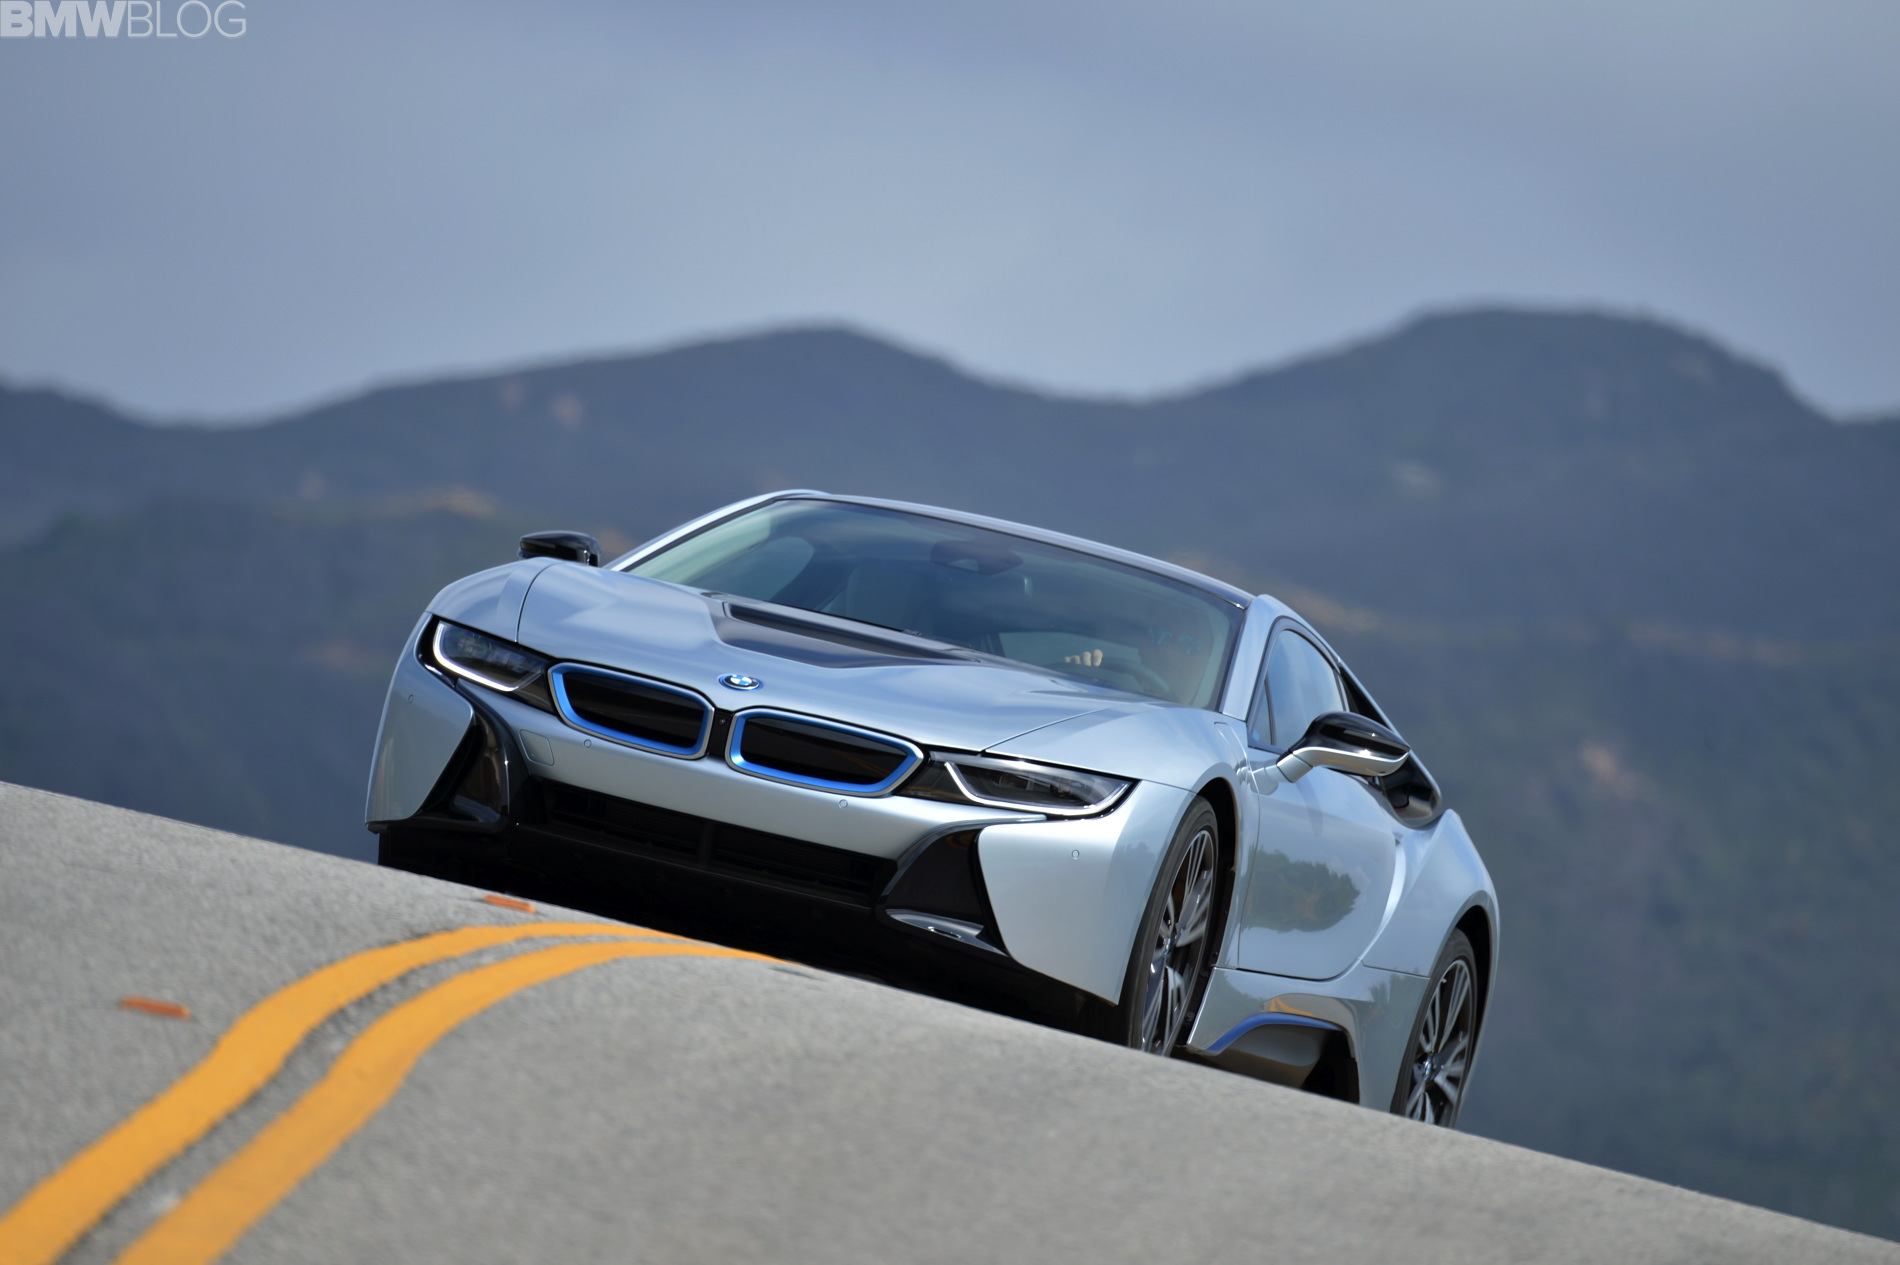 bmw i8 test drive review 01